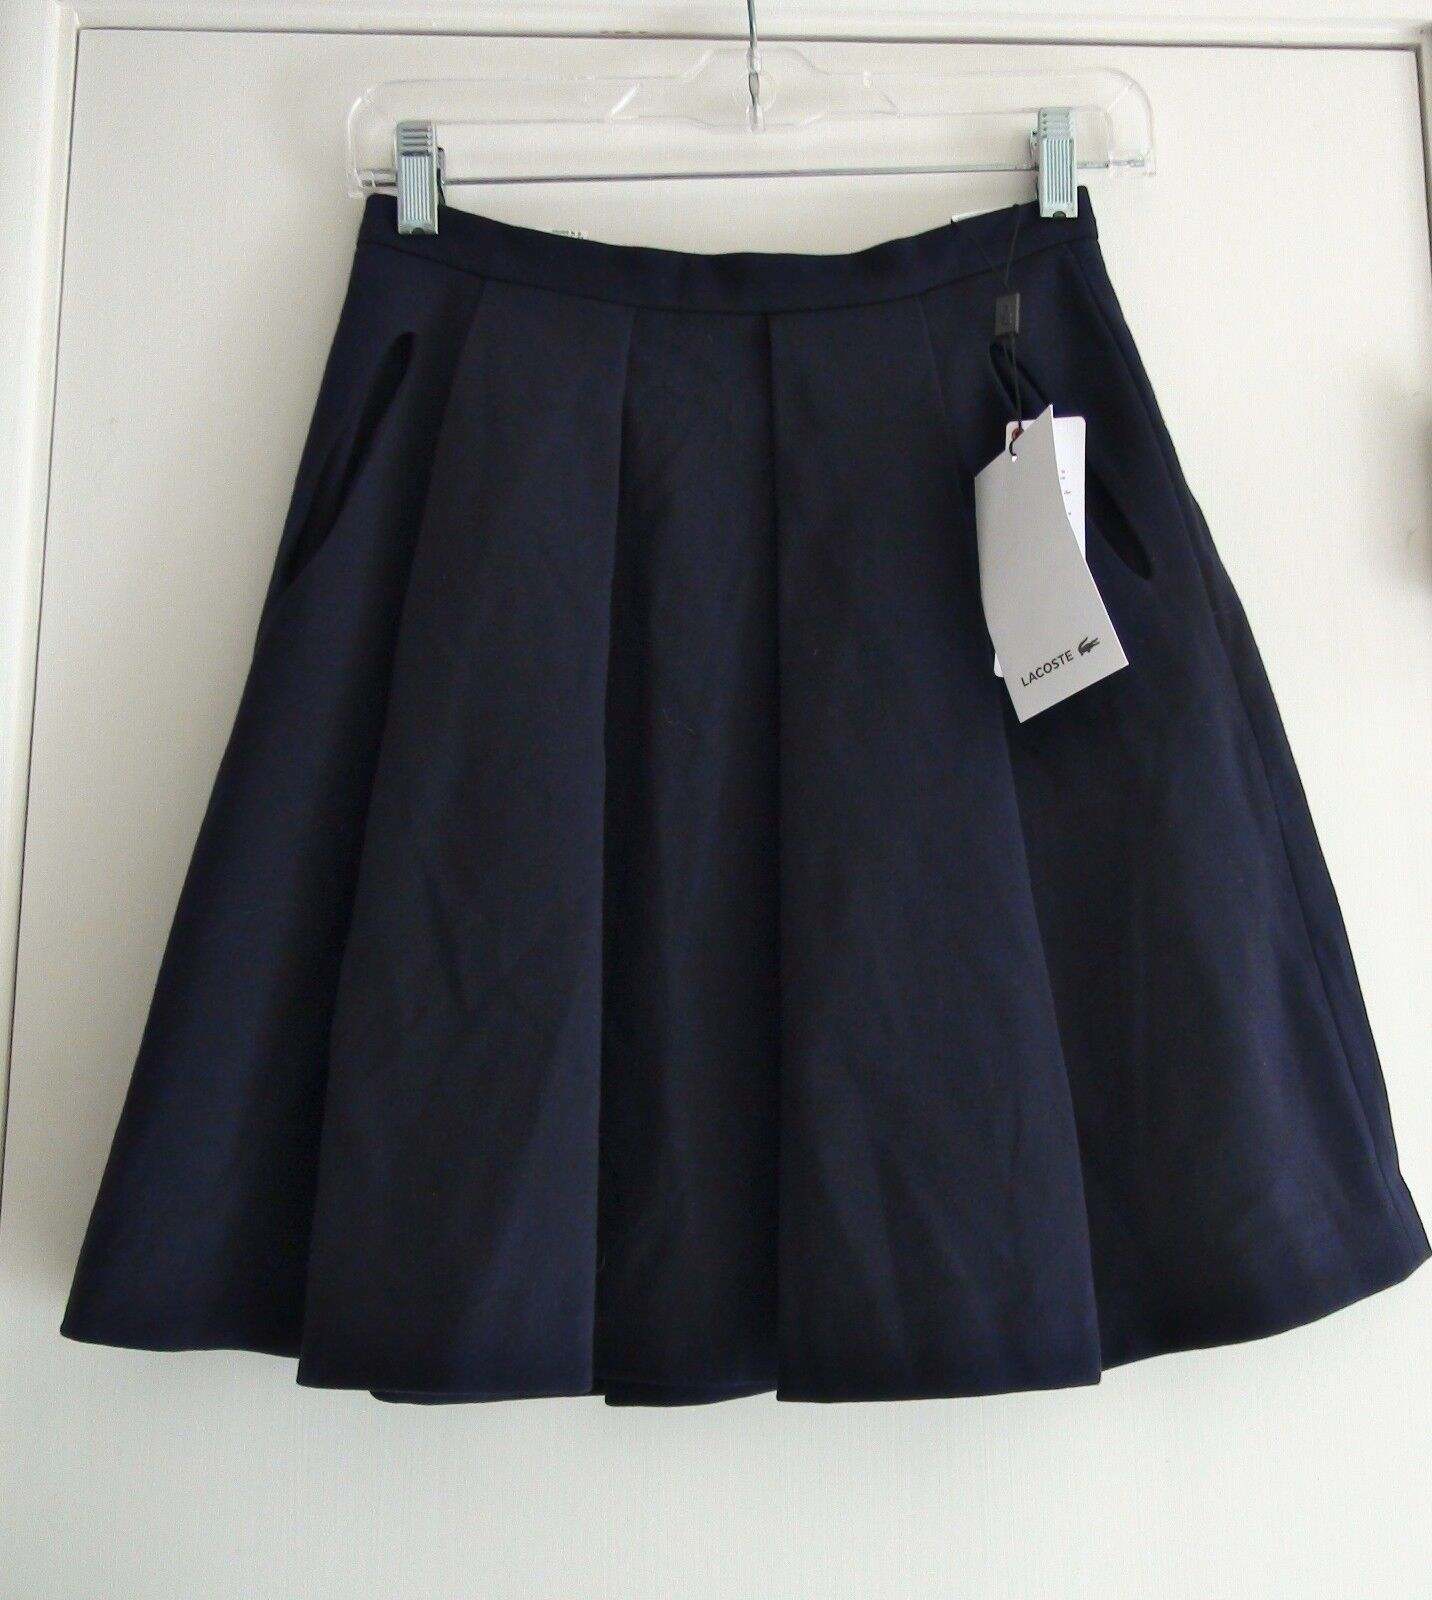 Lacoste Eclipse Fashion Navy bluee Pleated Skirt JF5543 Sz US 8  165 NWT